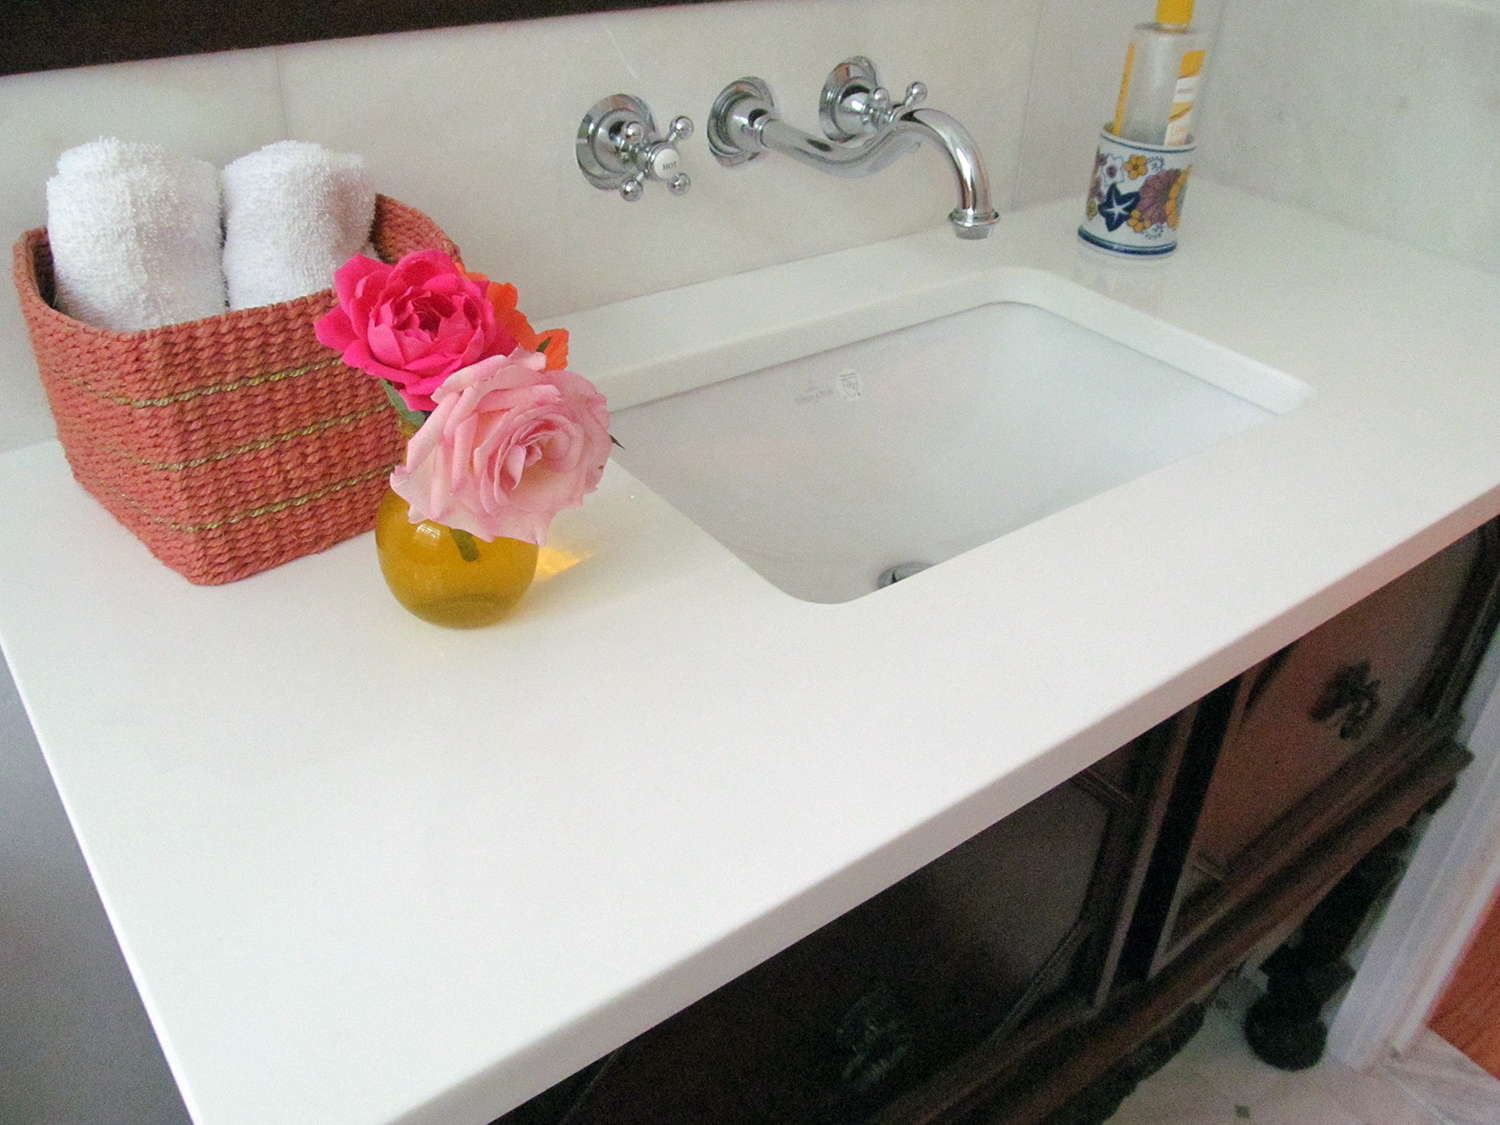 The vanity top and sink, both Reuse Center purchases, were installed on top of a sideboard that the homeowner had long owned.